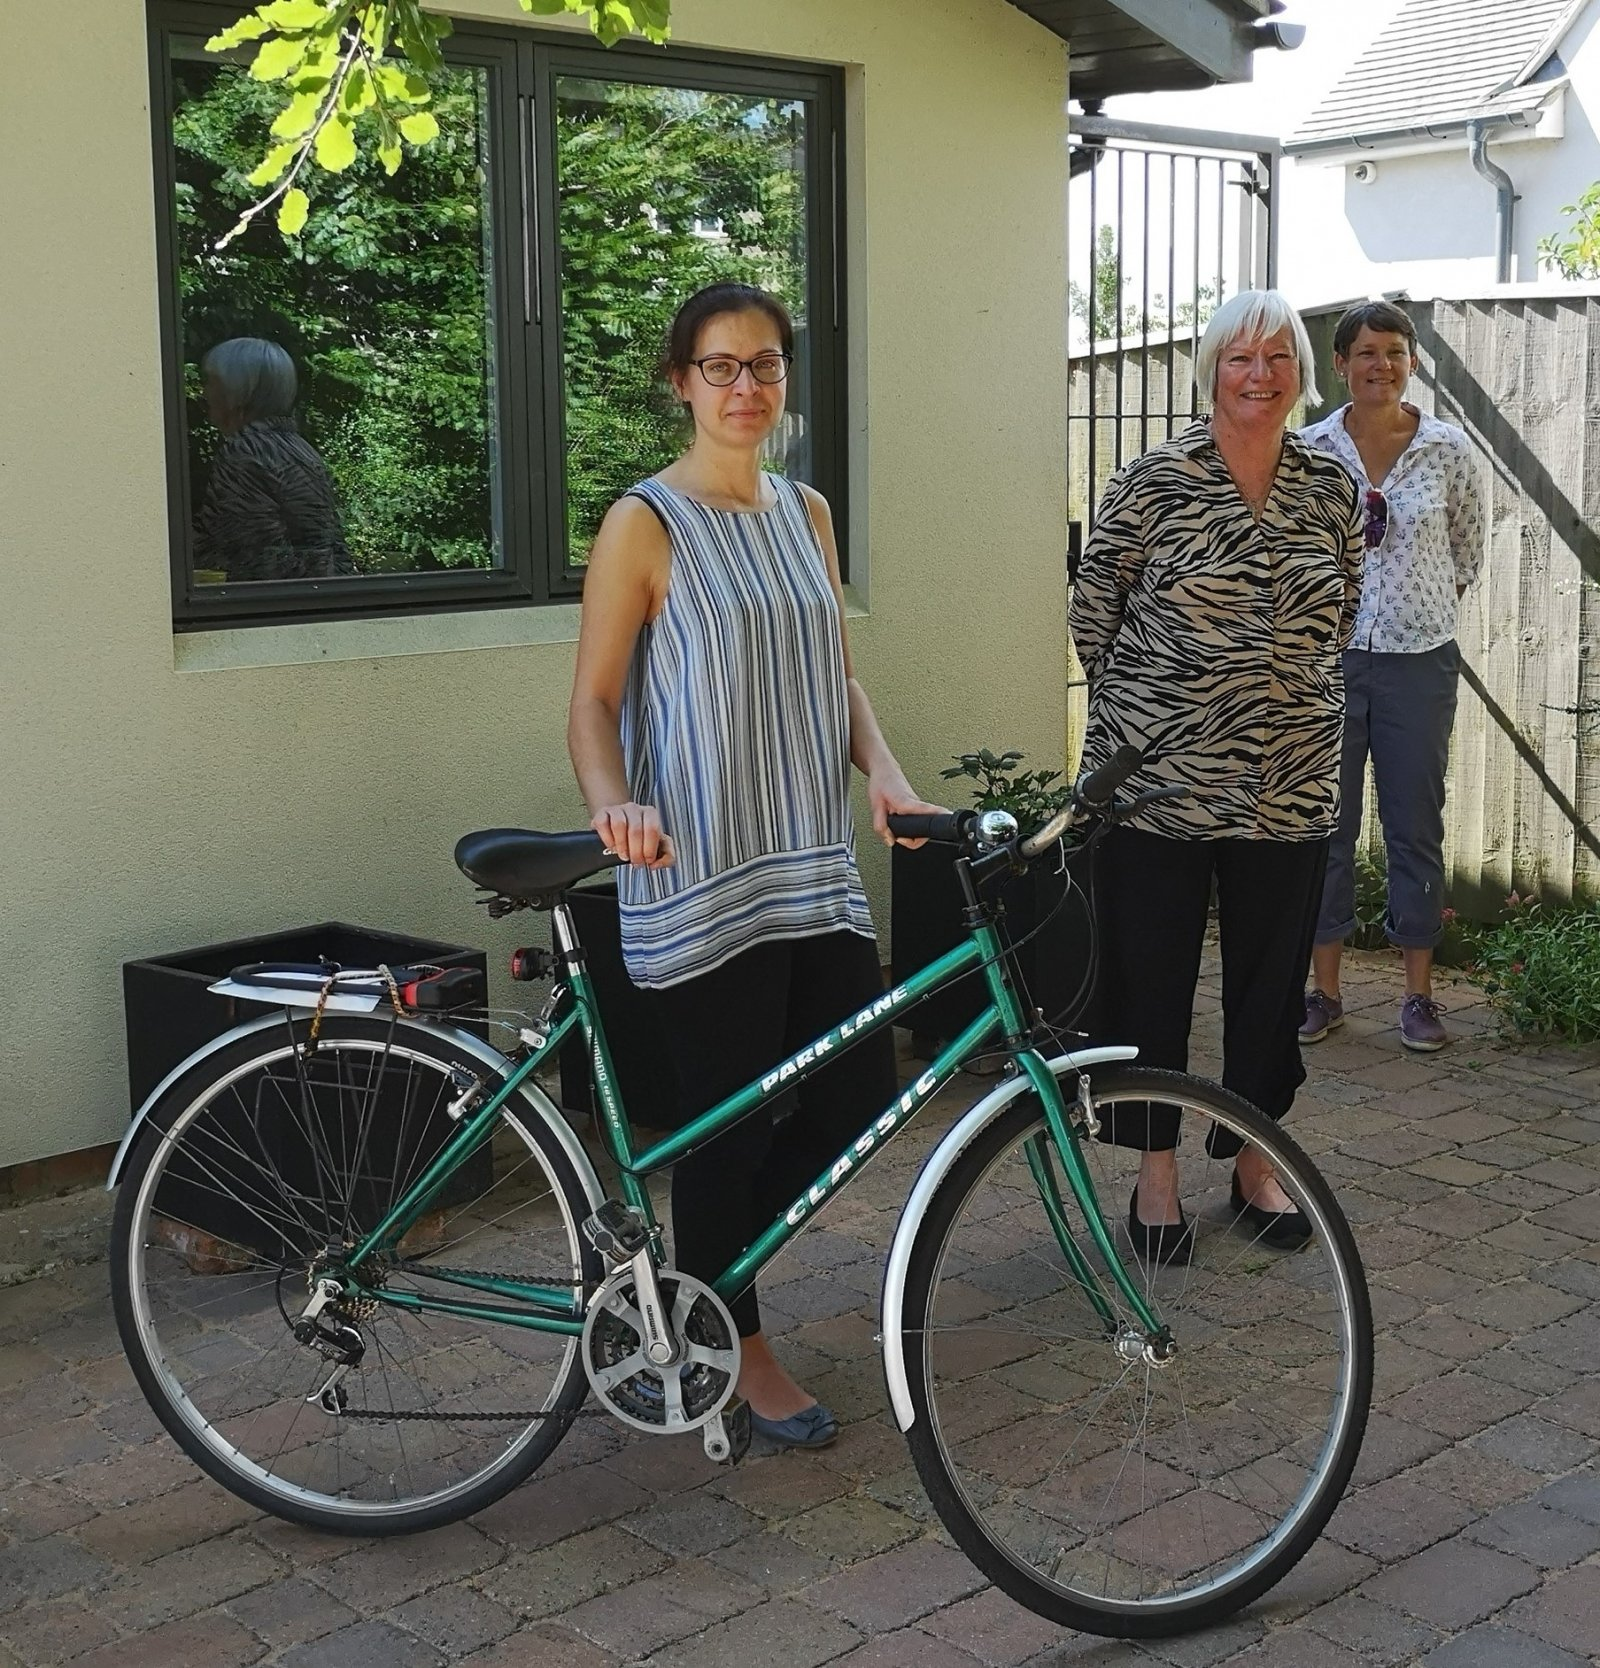 Funding boost from Oxfordshire Community Foundation as 200th bike milestone is celebrated